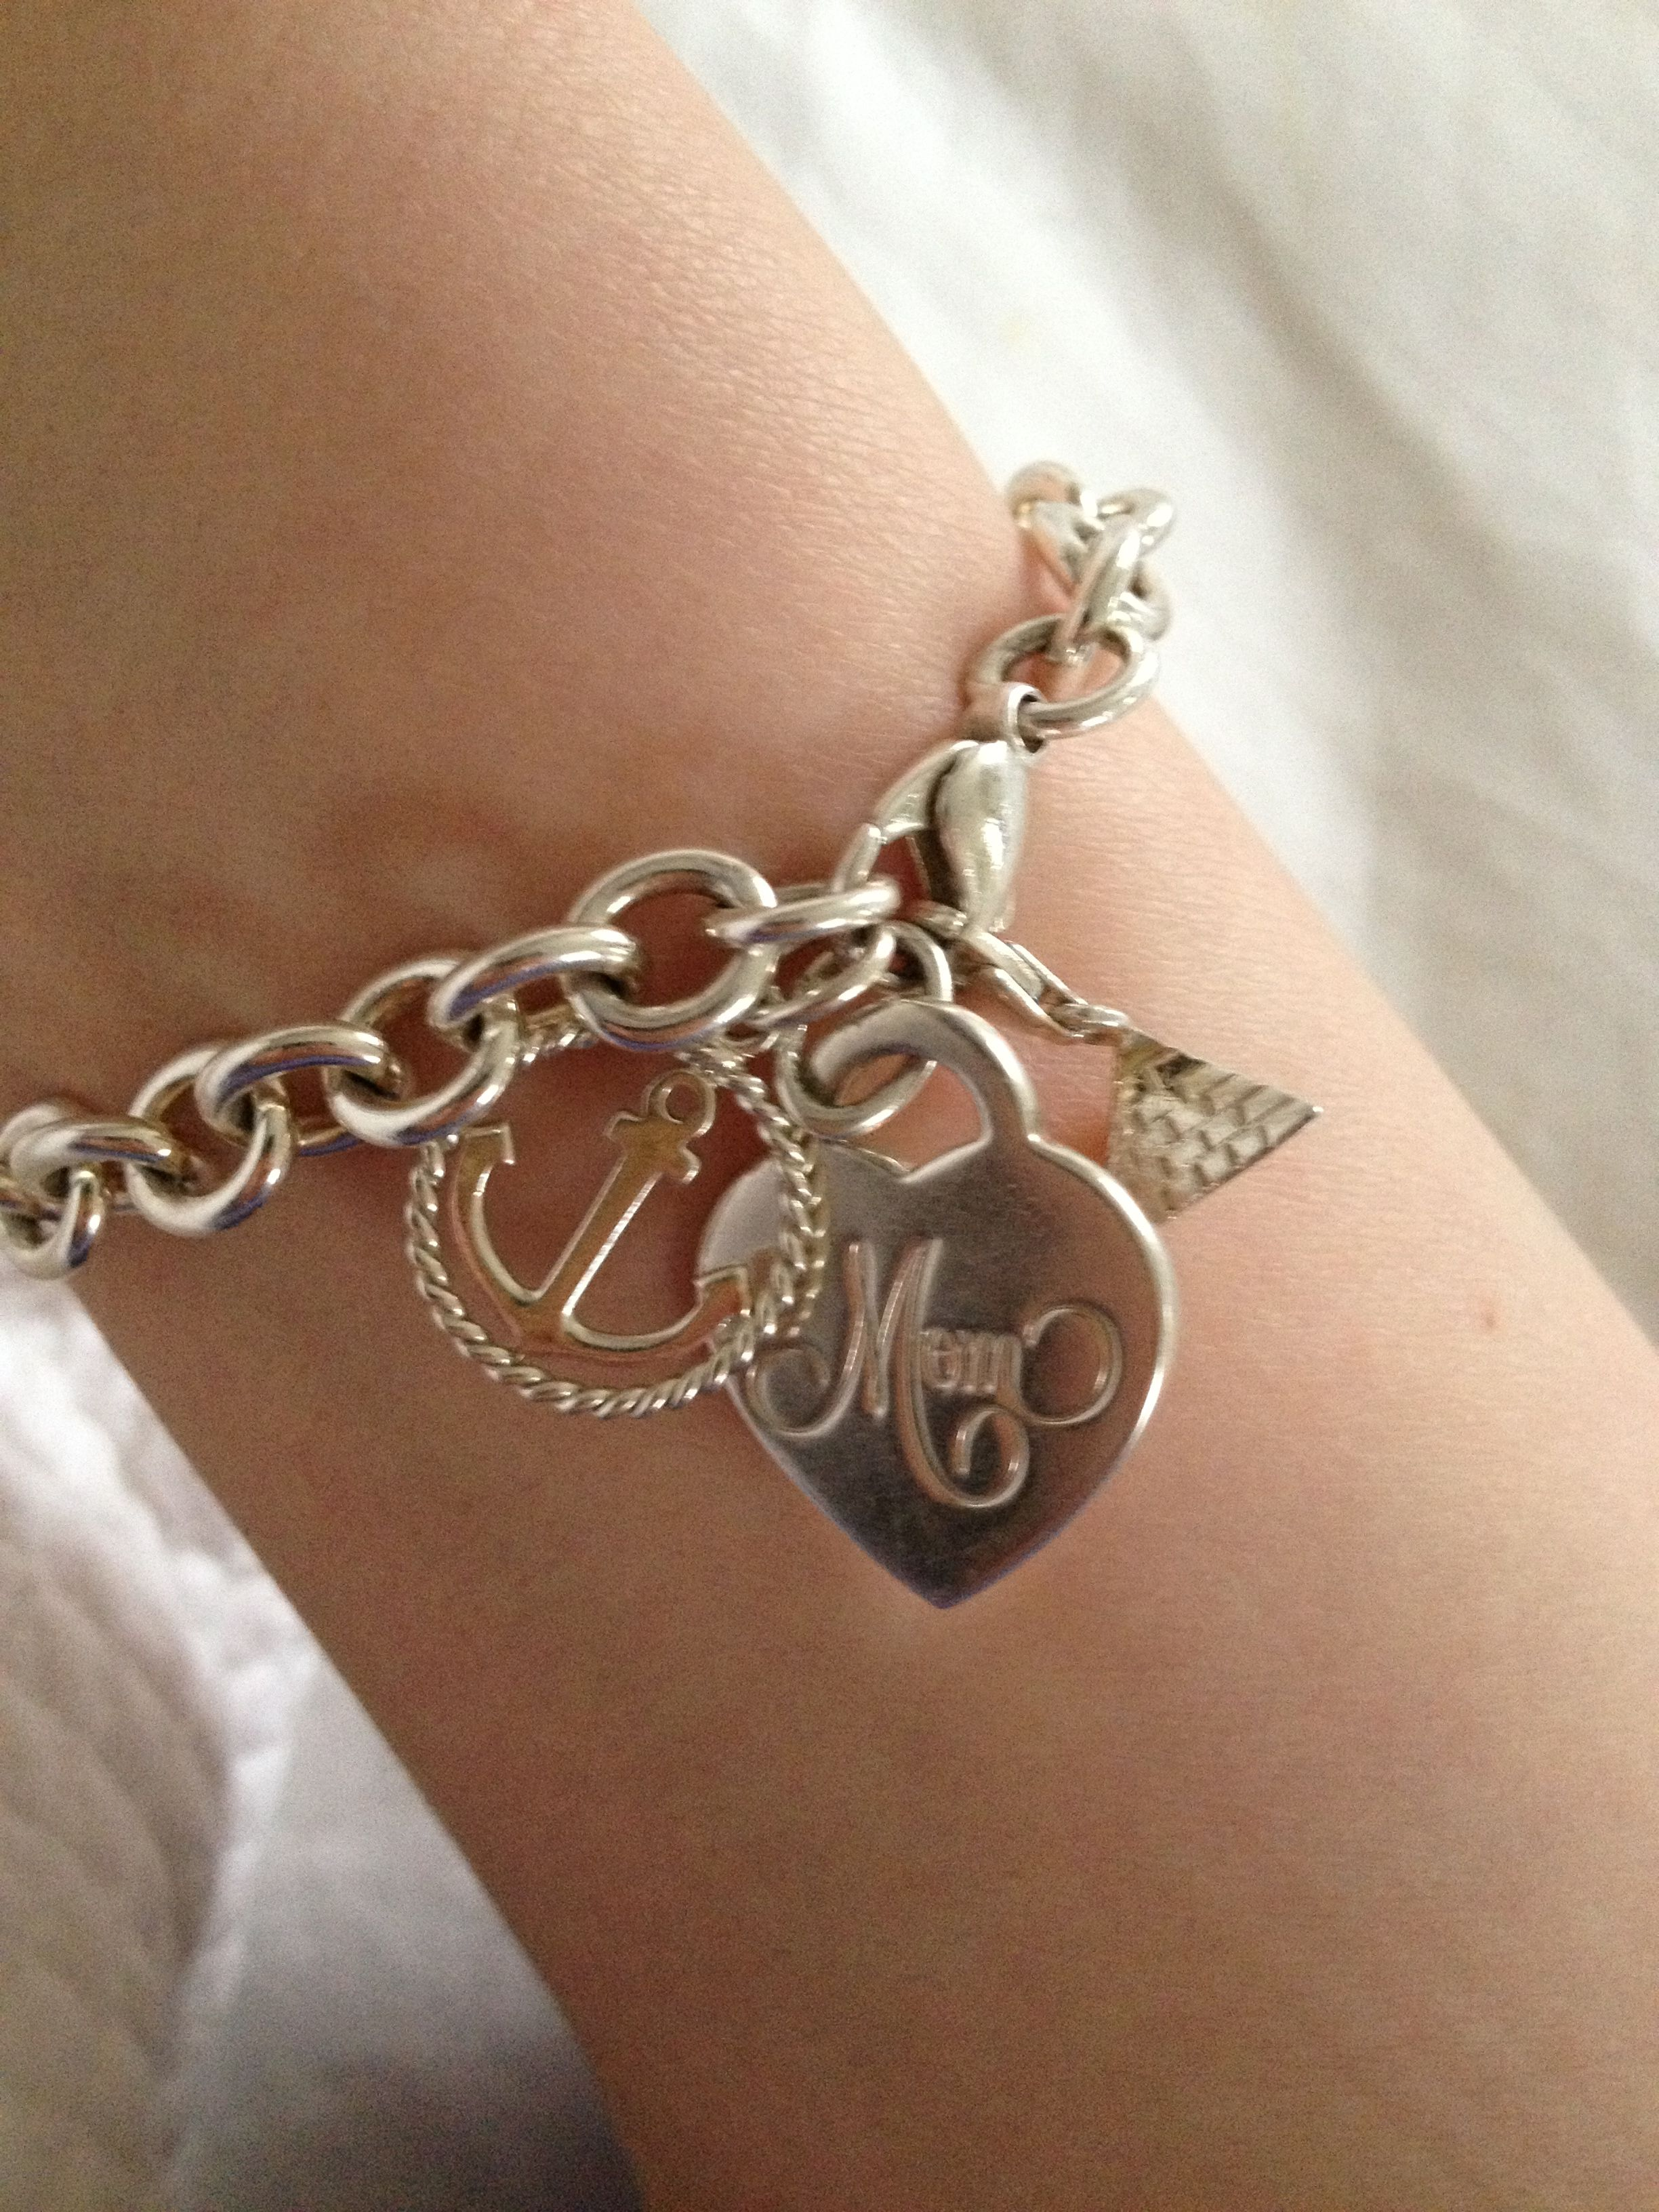 Tiffany s Mom Charm bracelet I would add 2 heart charms with Nick